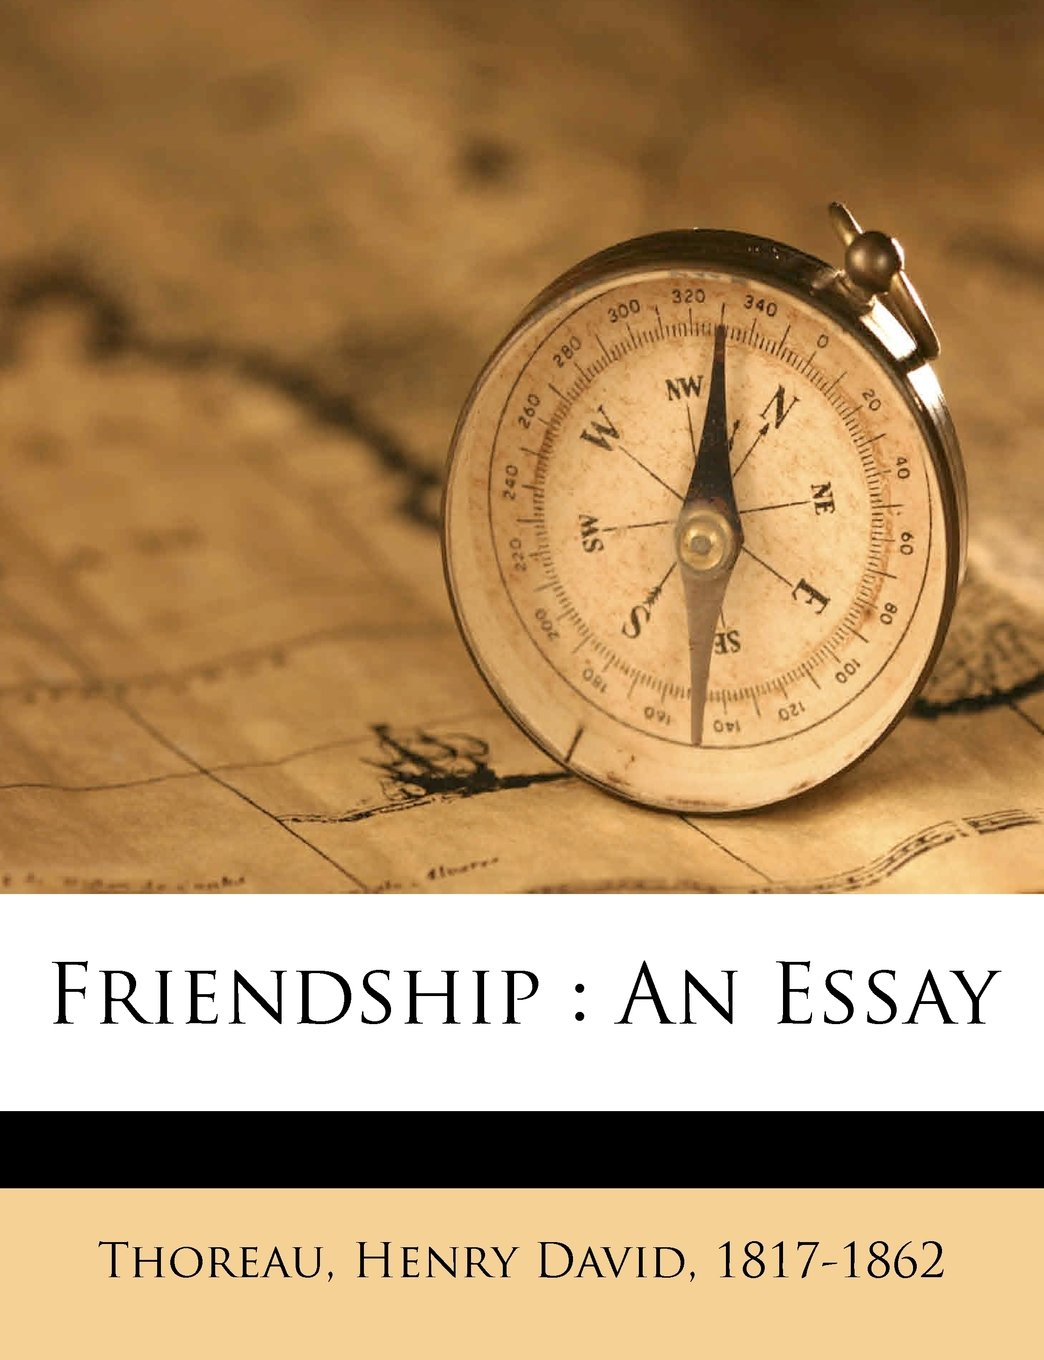 friendship an essay henry david 1817 1862 thoreau 9781246861990 friendship an essay henry david 1817 1862 thoreau 9781246861990 com books